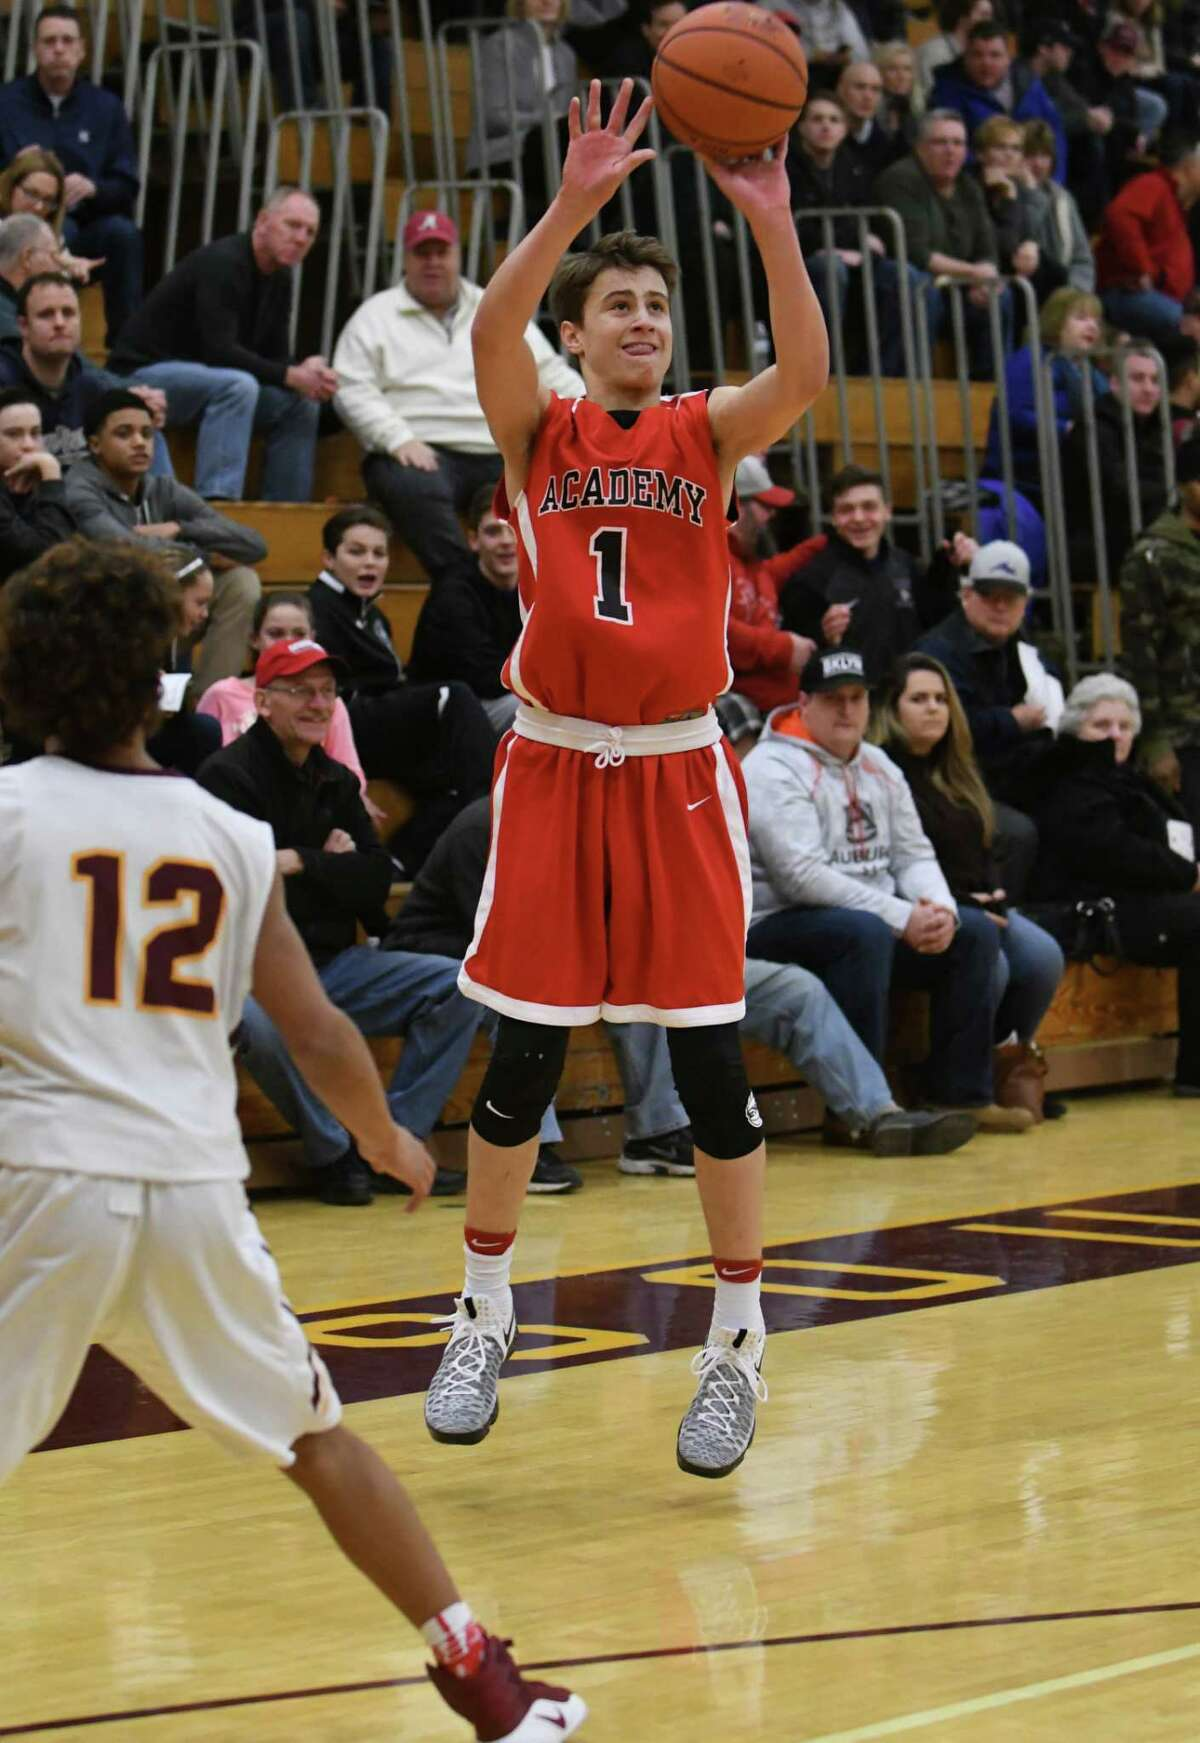 Albany Academy's August Mahoney shoots a three pointer during their high school basketball game against Colonie on Saturday Dec. 31, 2016 in Colonie, N.Y. (Michael P. Farrell/Times Union)